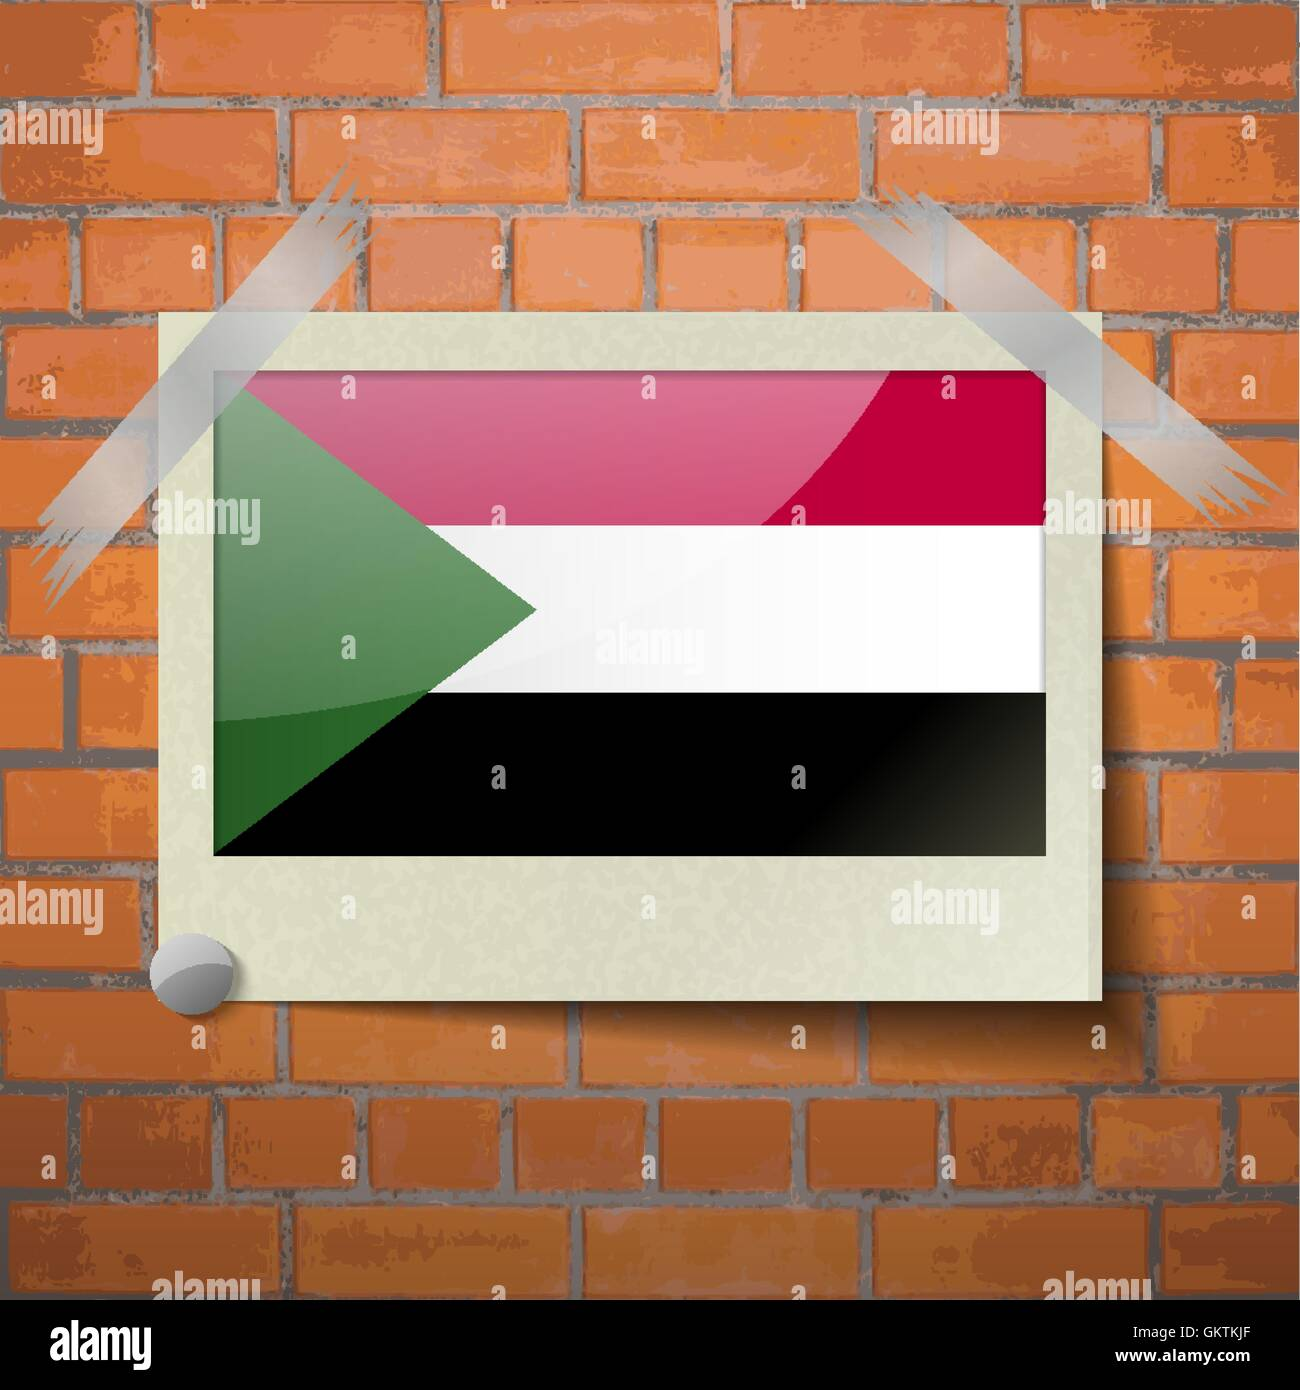 Flags Sudan scotch taped to a red brick wall - Stock Vector